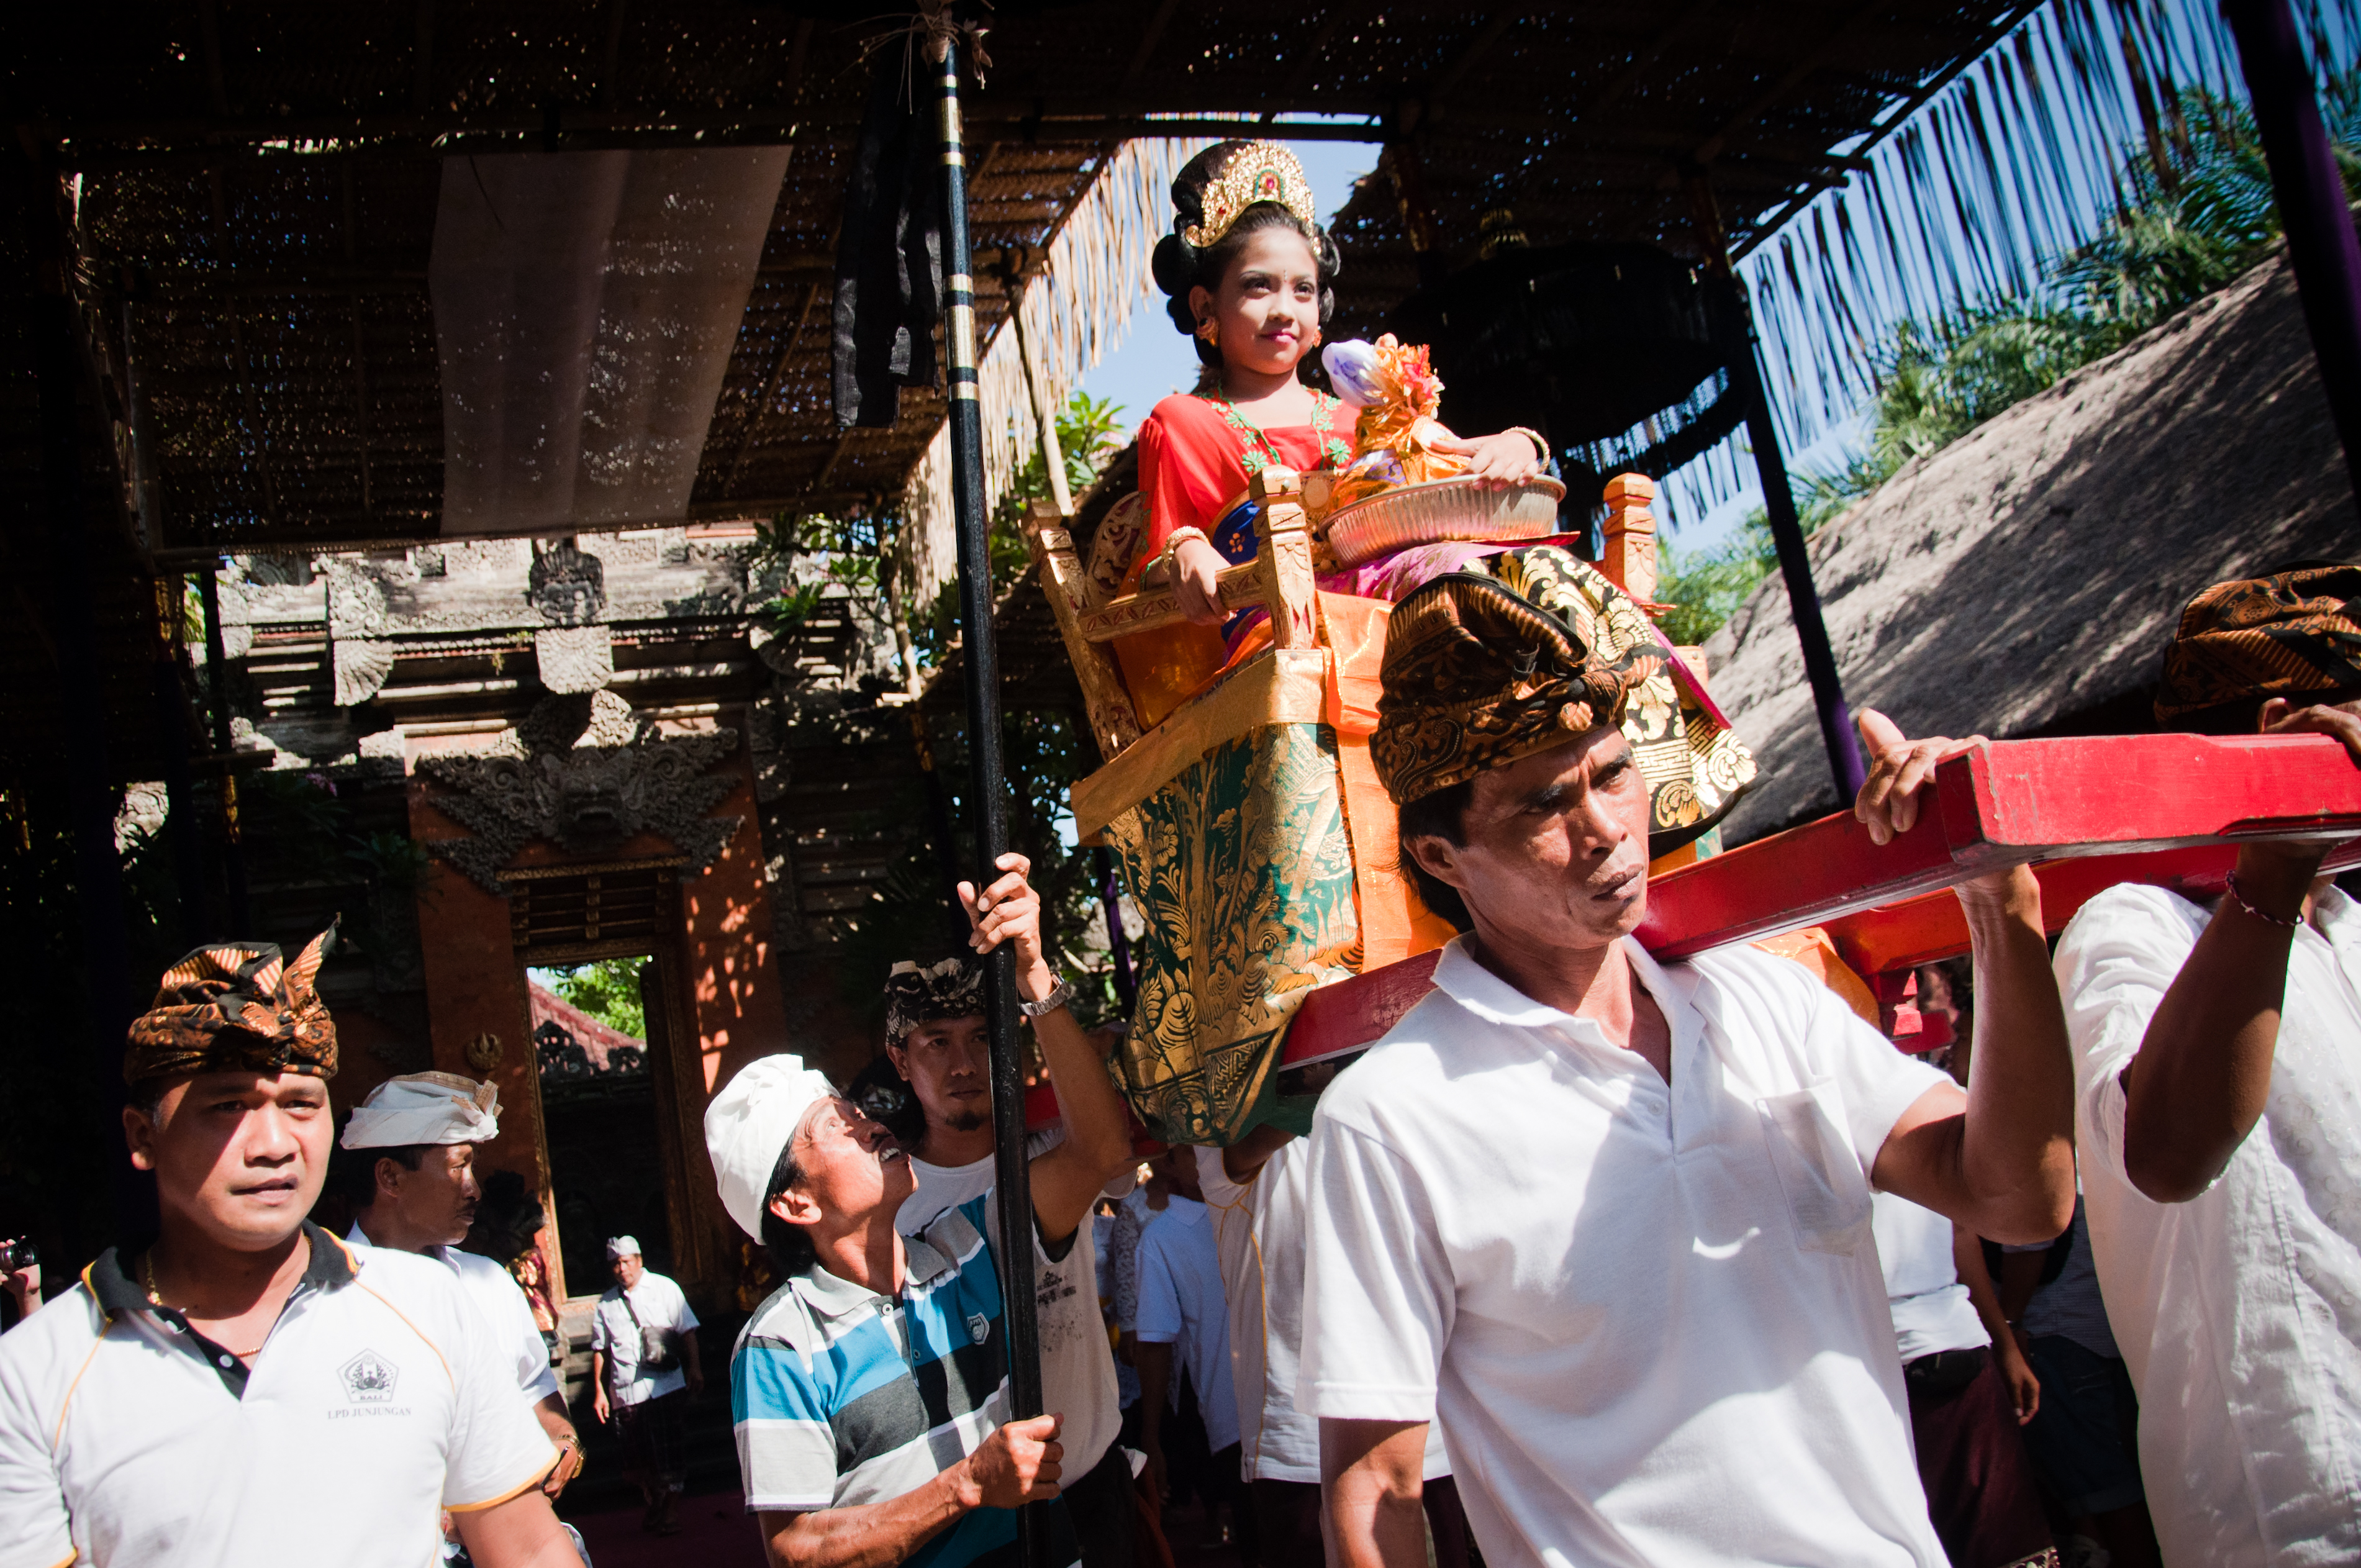 Women being carried in temple photo